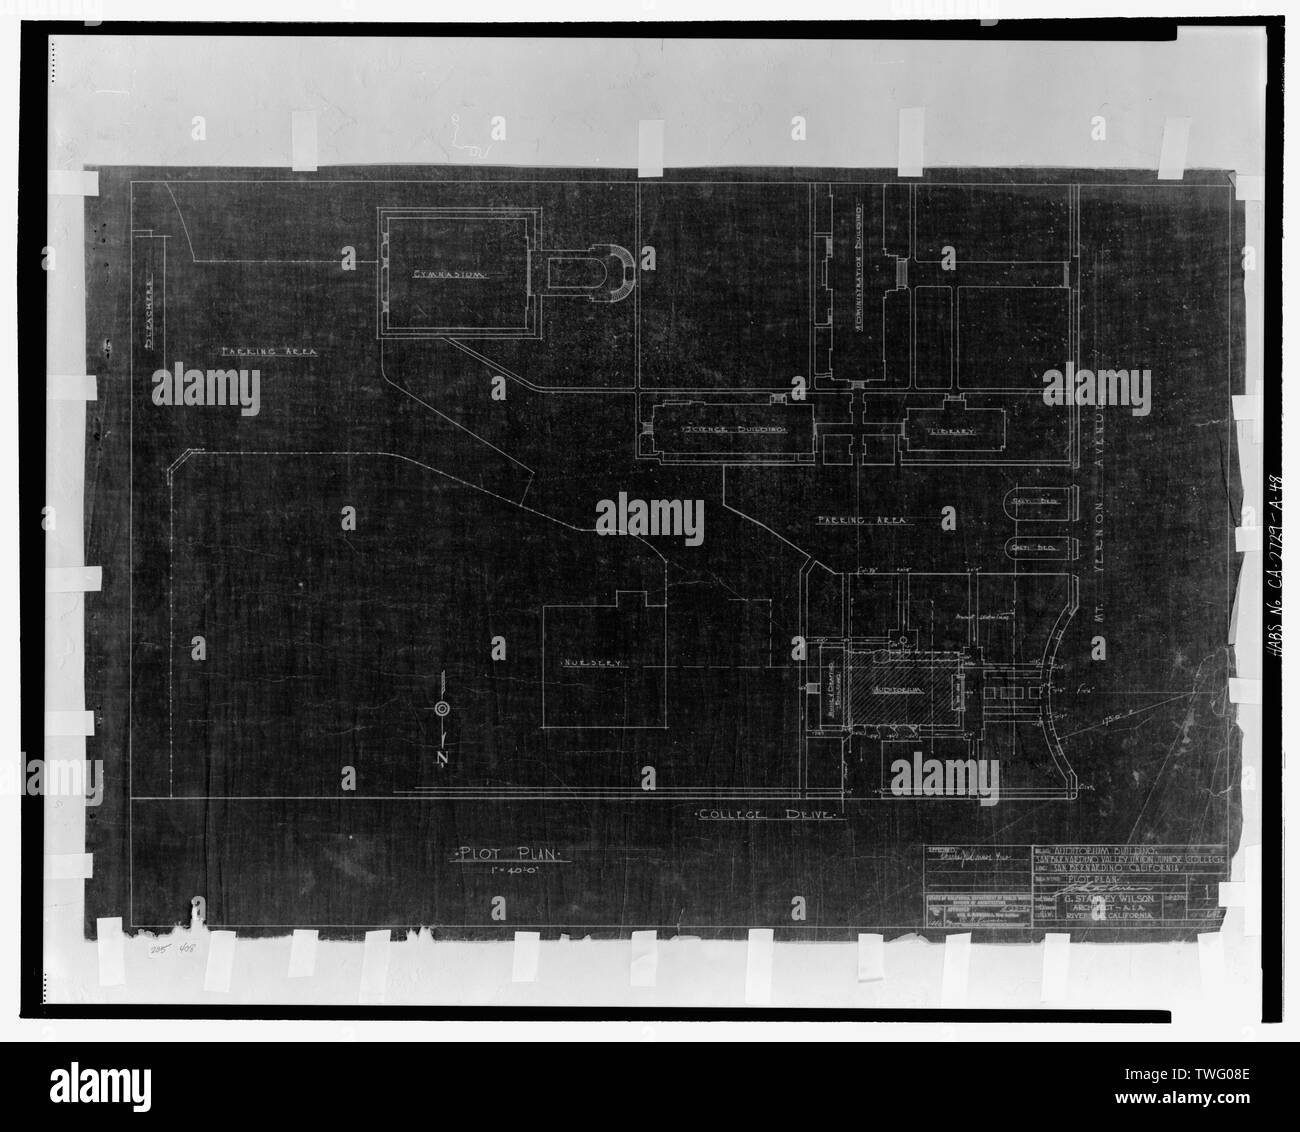 Plot plan. San Bernardino Valley Union Junior College, Auditorium building. G. Stanley Wilson, Architect, A.I.A., Riverside, California. Sheet 1, job no. 692. Scale 1 inch to forty feet. March 27, 1936. Application no. 1446, approved by the State of California, Department of Public Works, Division of Architecture, April 22, 1936. - San Bernardino Valley College, Auditorium, 701 South Mount Vernon Avenue, San Bernardino, San Bernardino County, CA - Stock Image